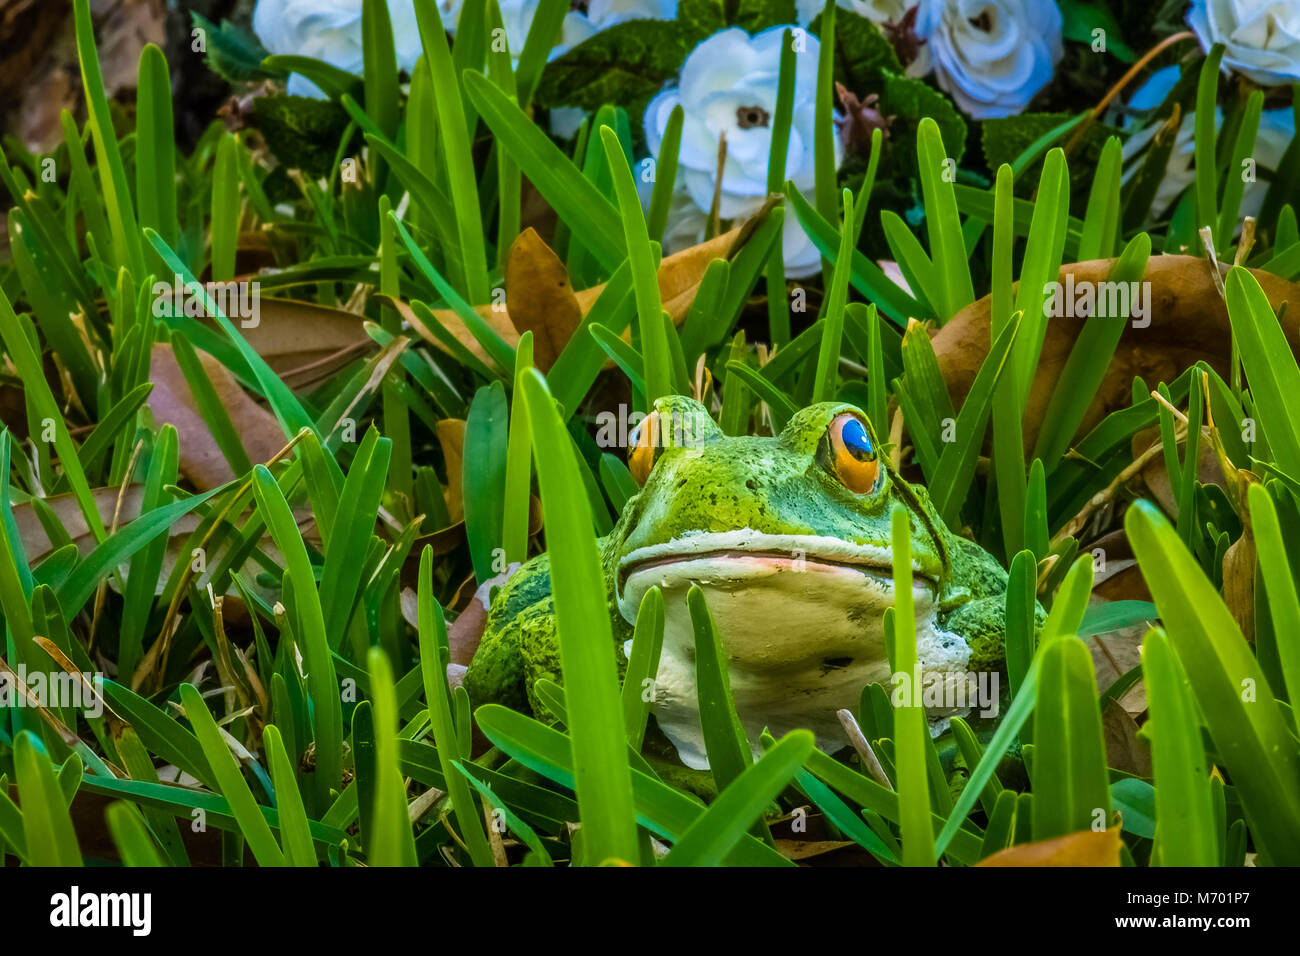 A frog hides in the grass in front of white flowers. - Stock Image